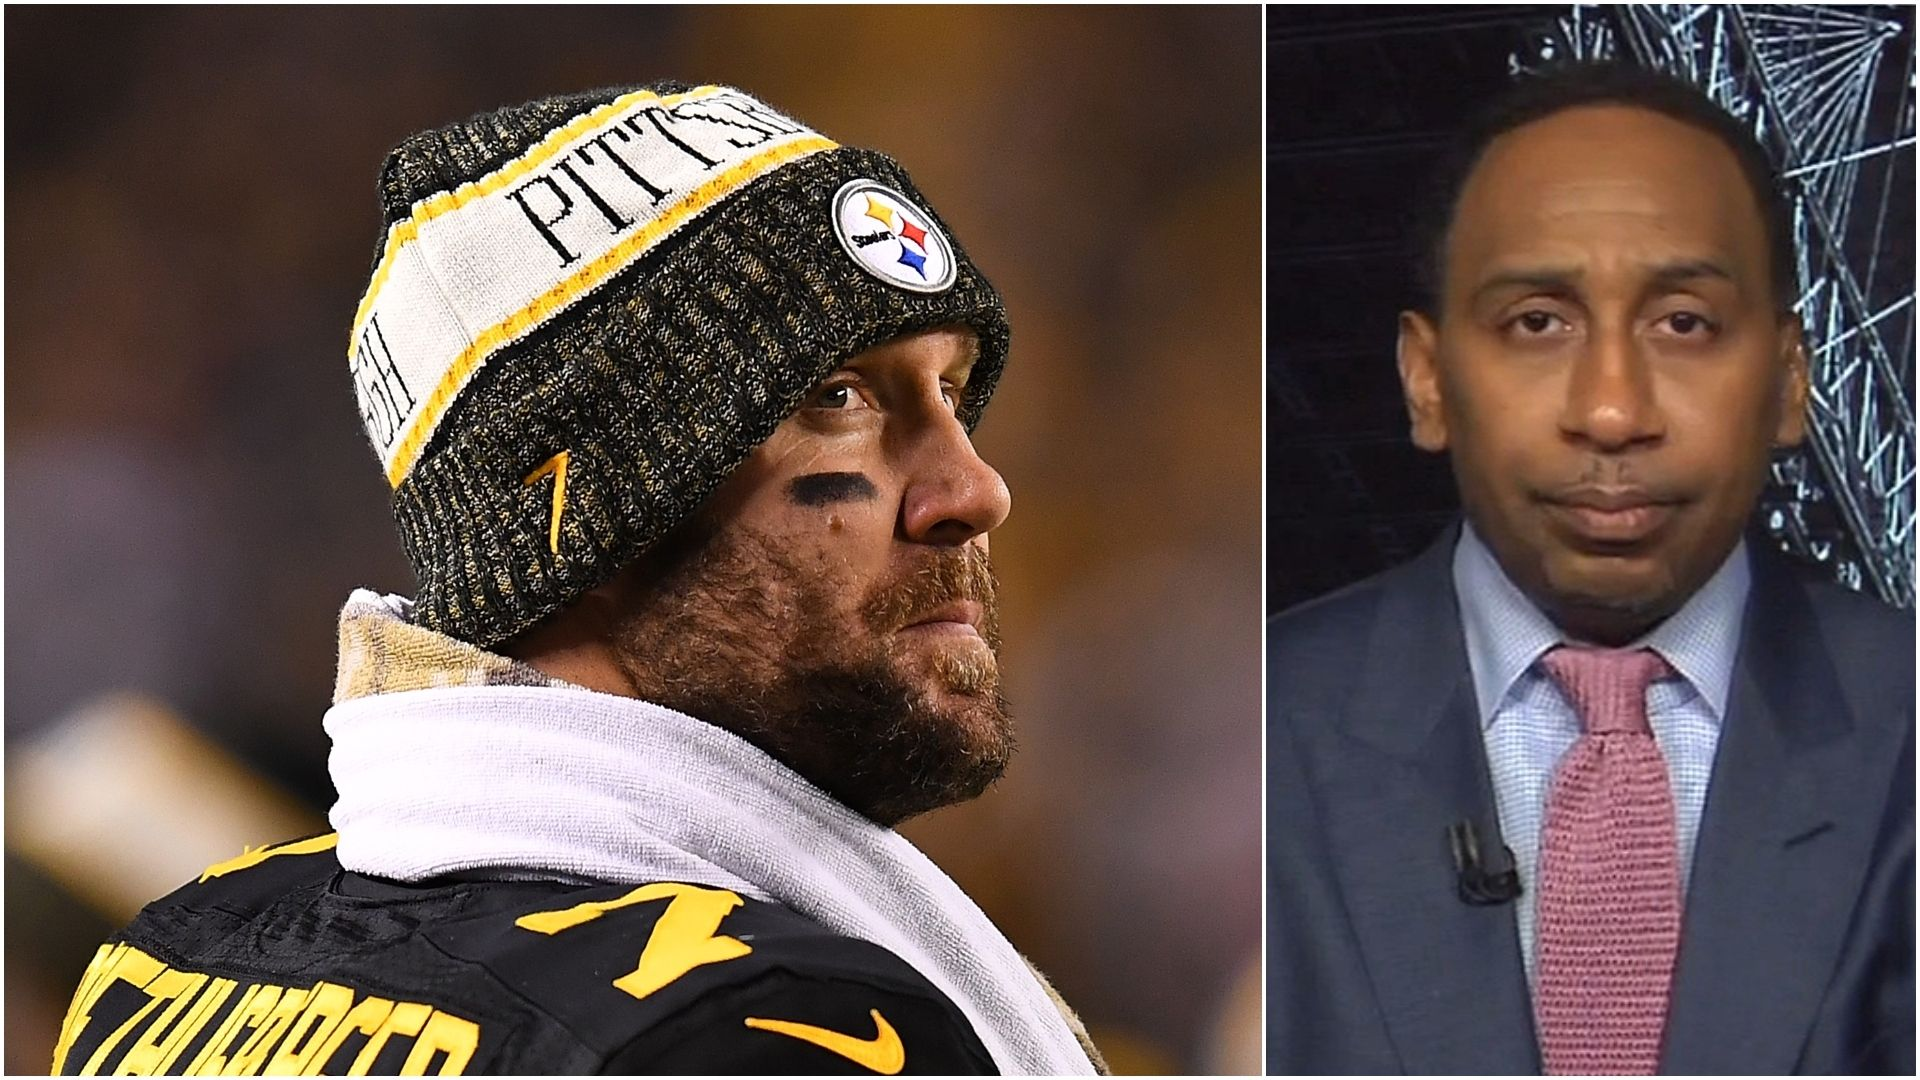 Bell on Roethlisberger: 'Wants to win his way'